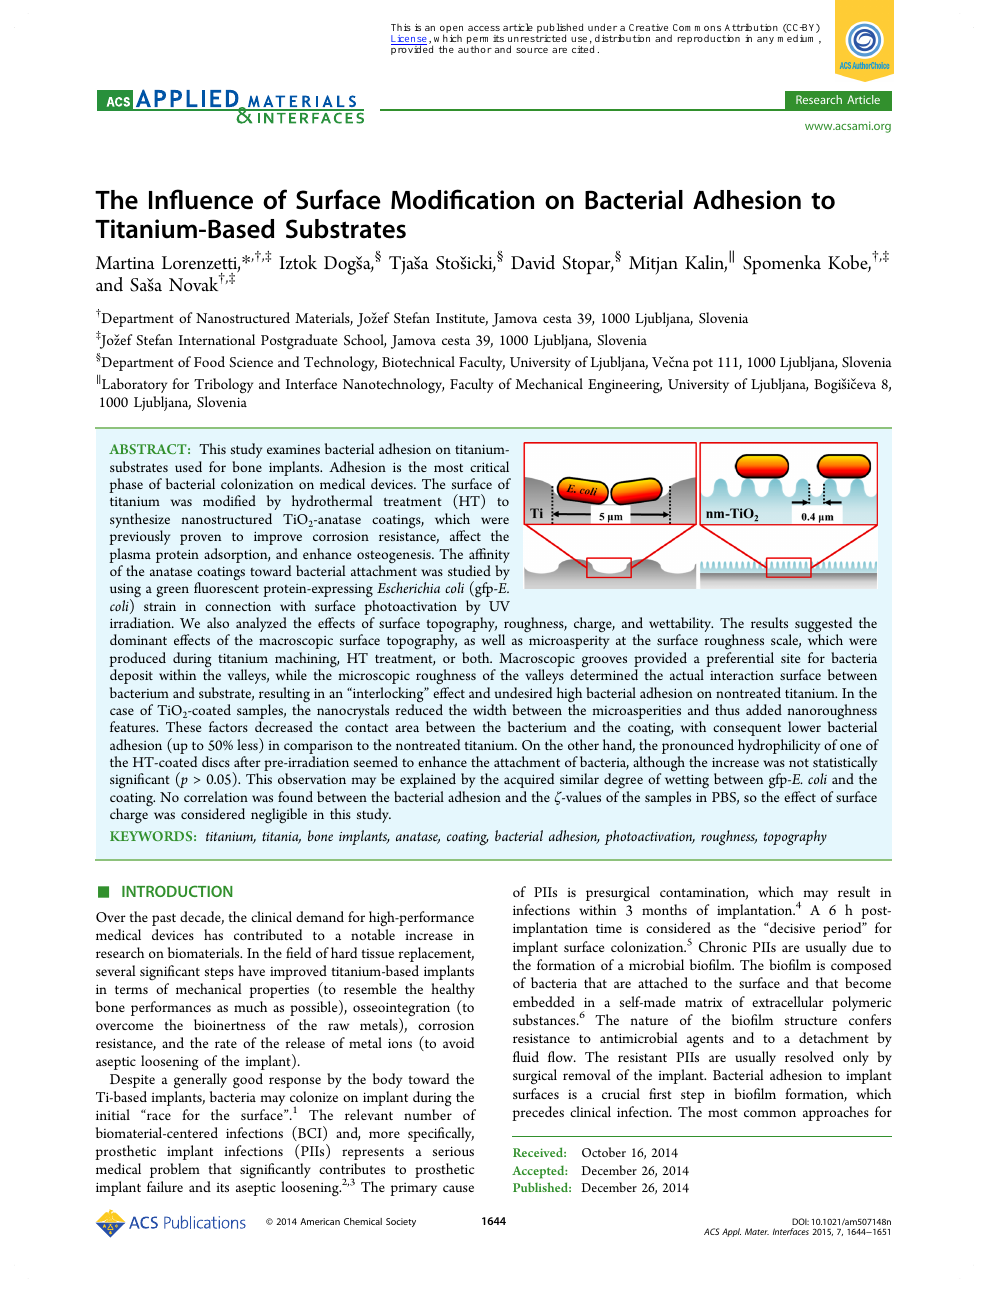 The Influence of Surface Modification on Bacterial Adhesion to